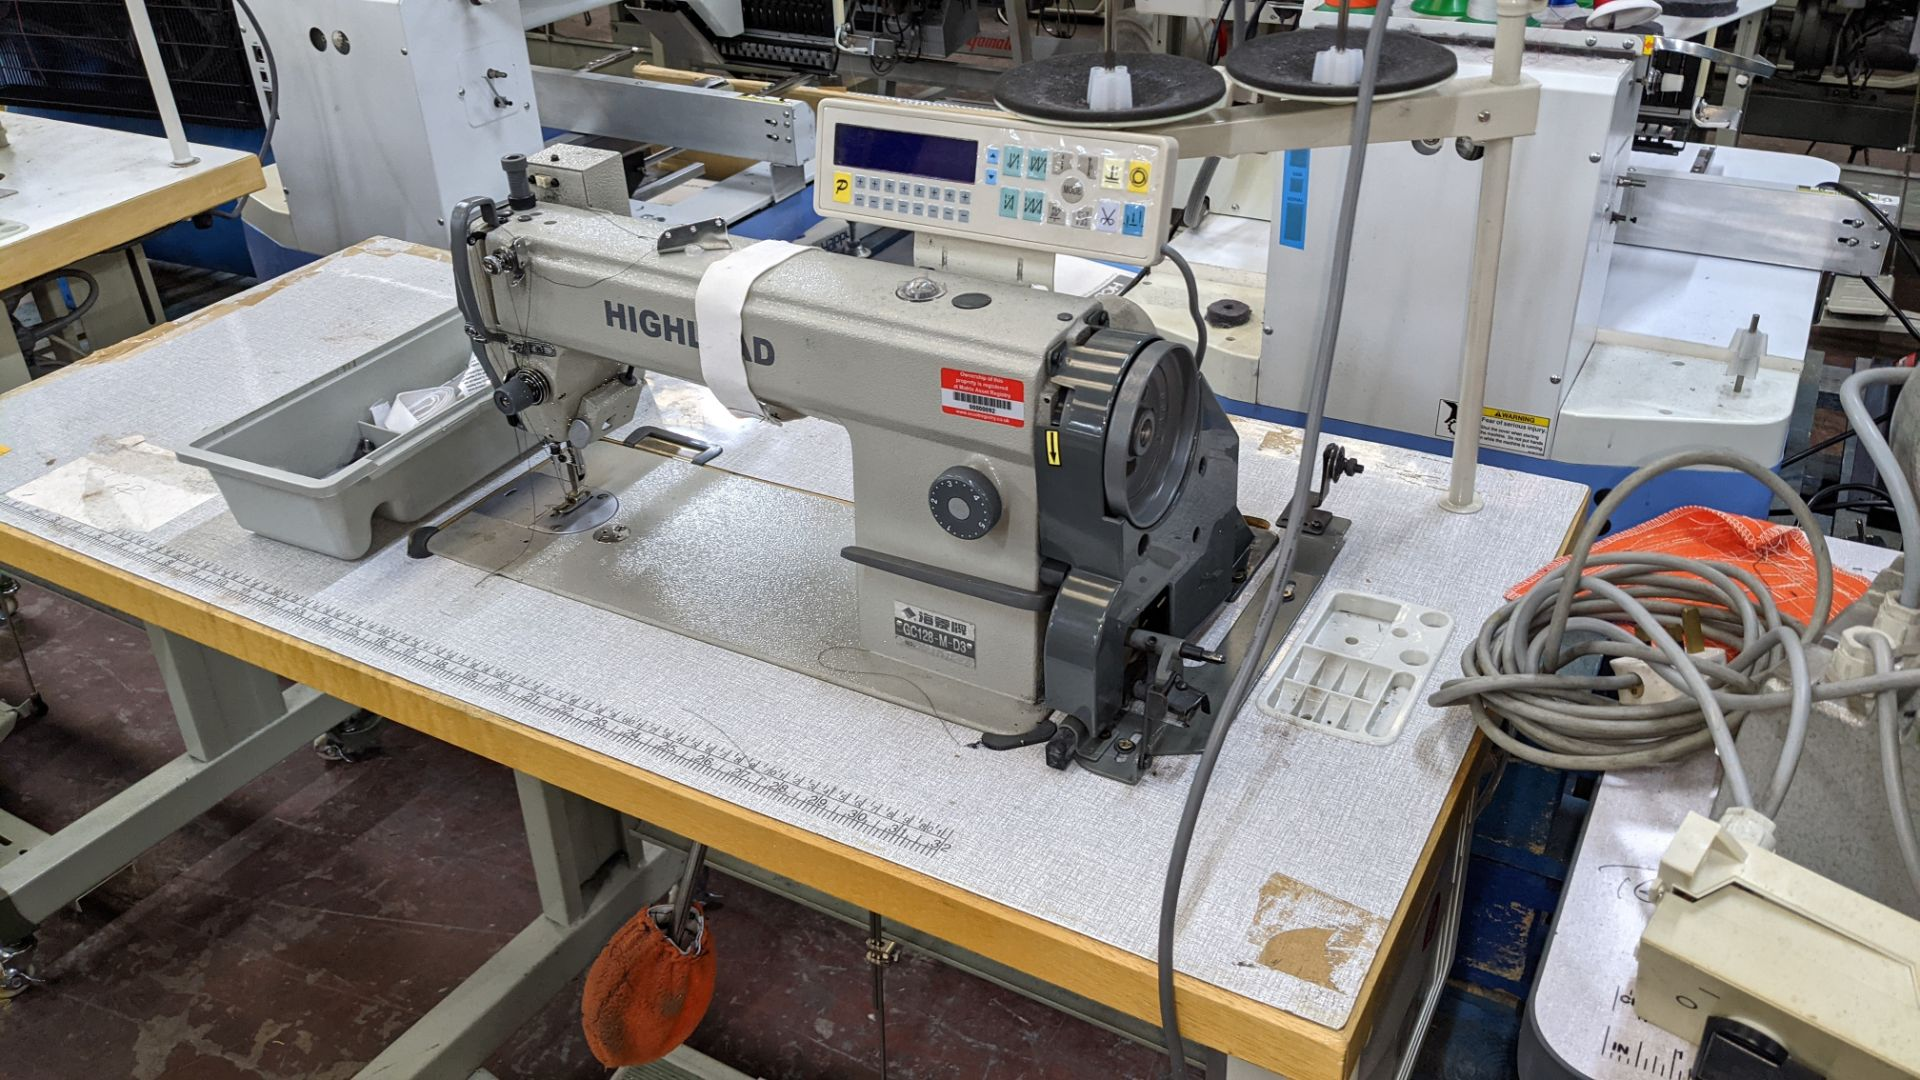 Highlead model GC128-M-D3 sewing machine - Image 3 of 18